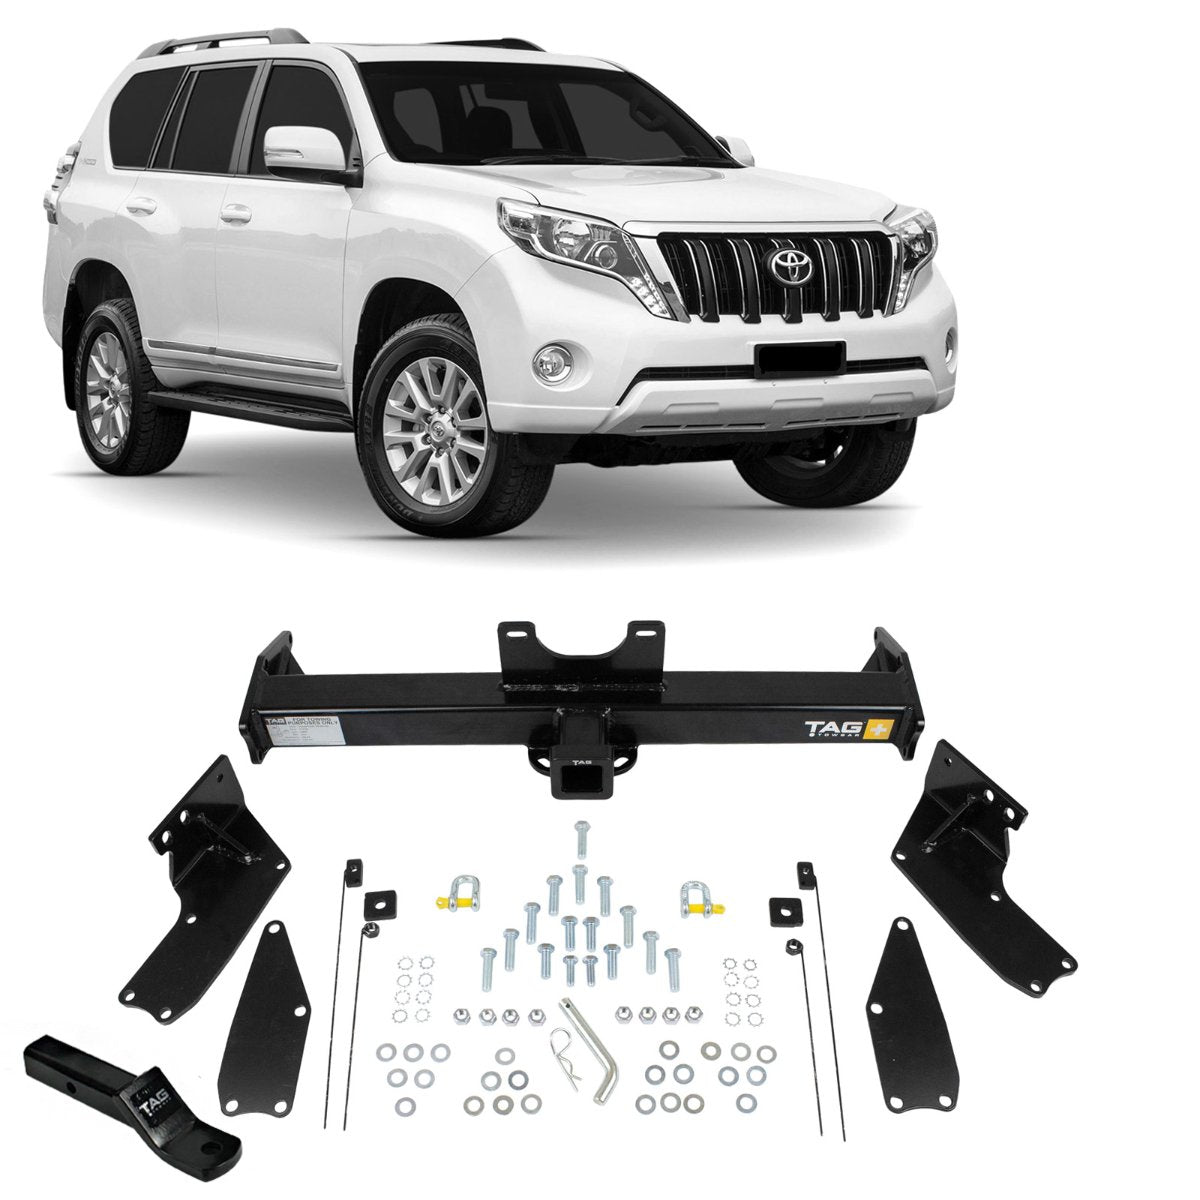 TAG Heavy Duty Towbar to suit Toyota Prado (09/2002 - on)